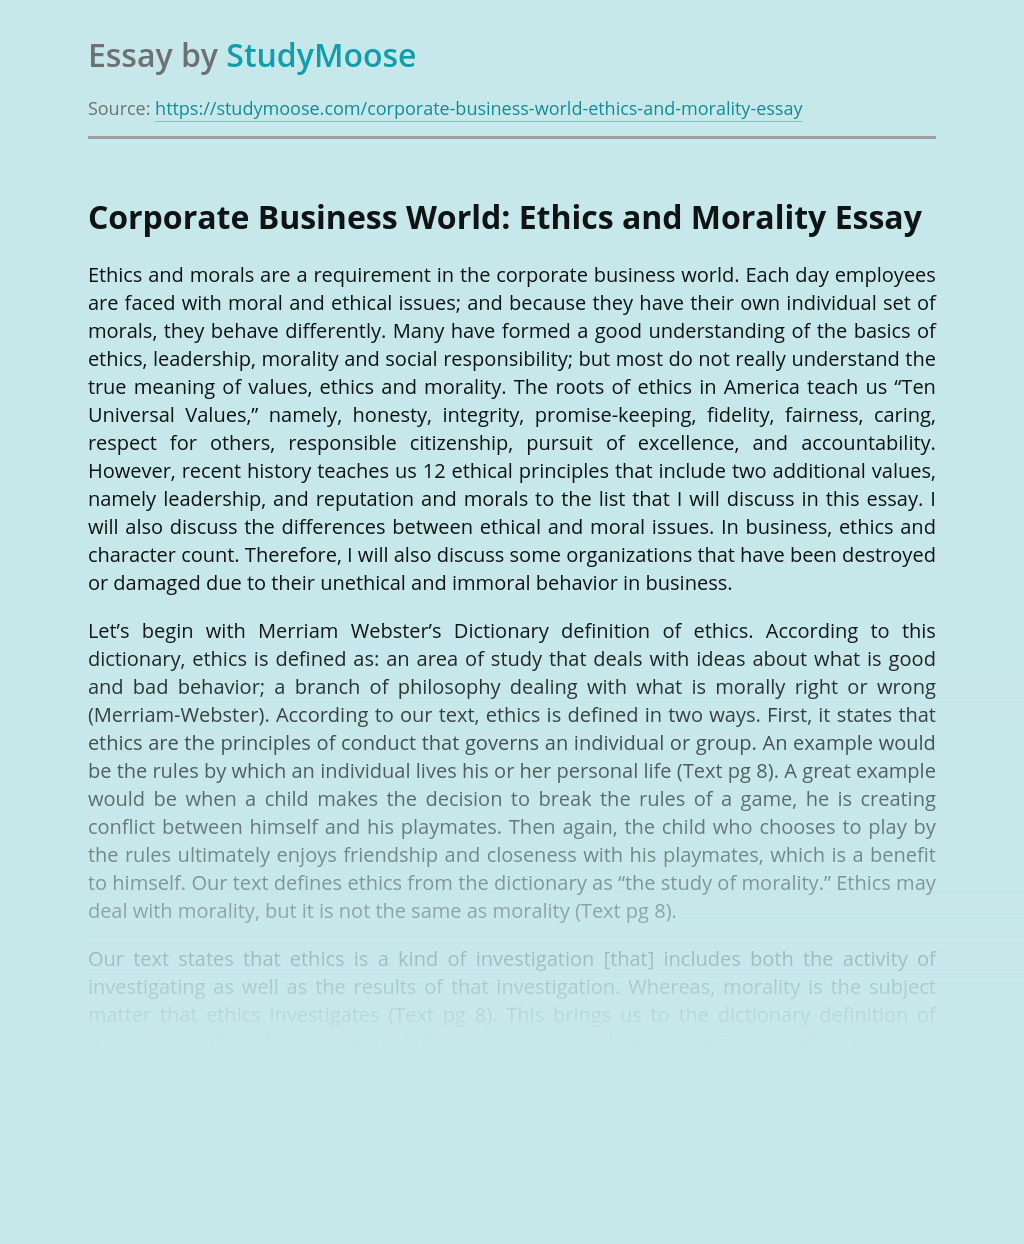 Corporate Business World: Ethics and Morality